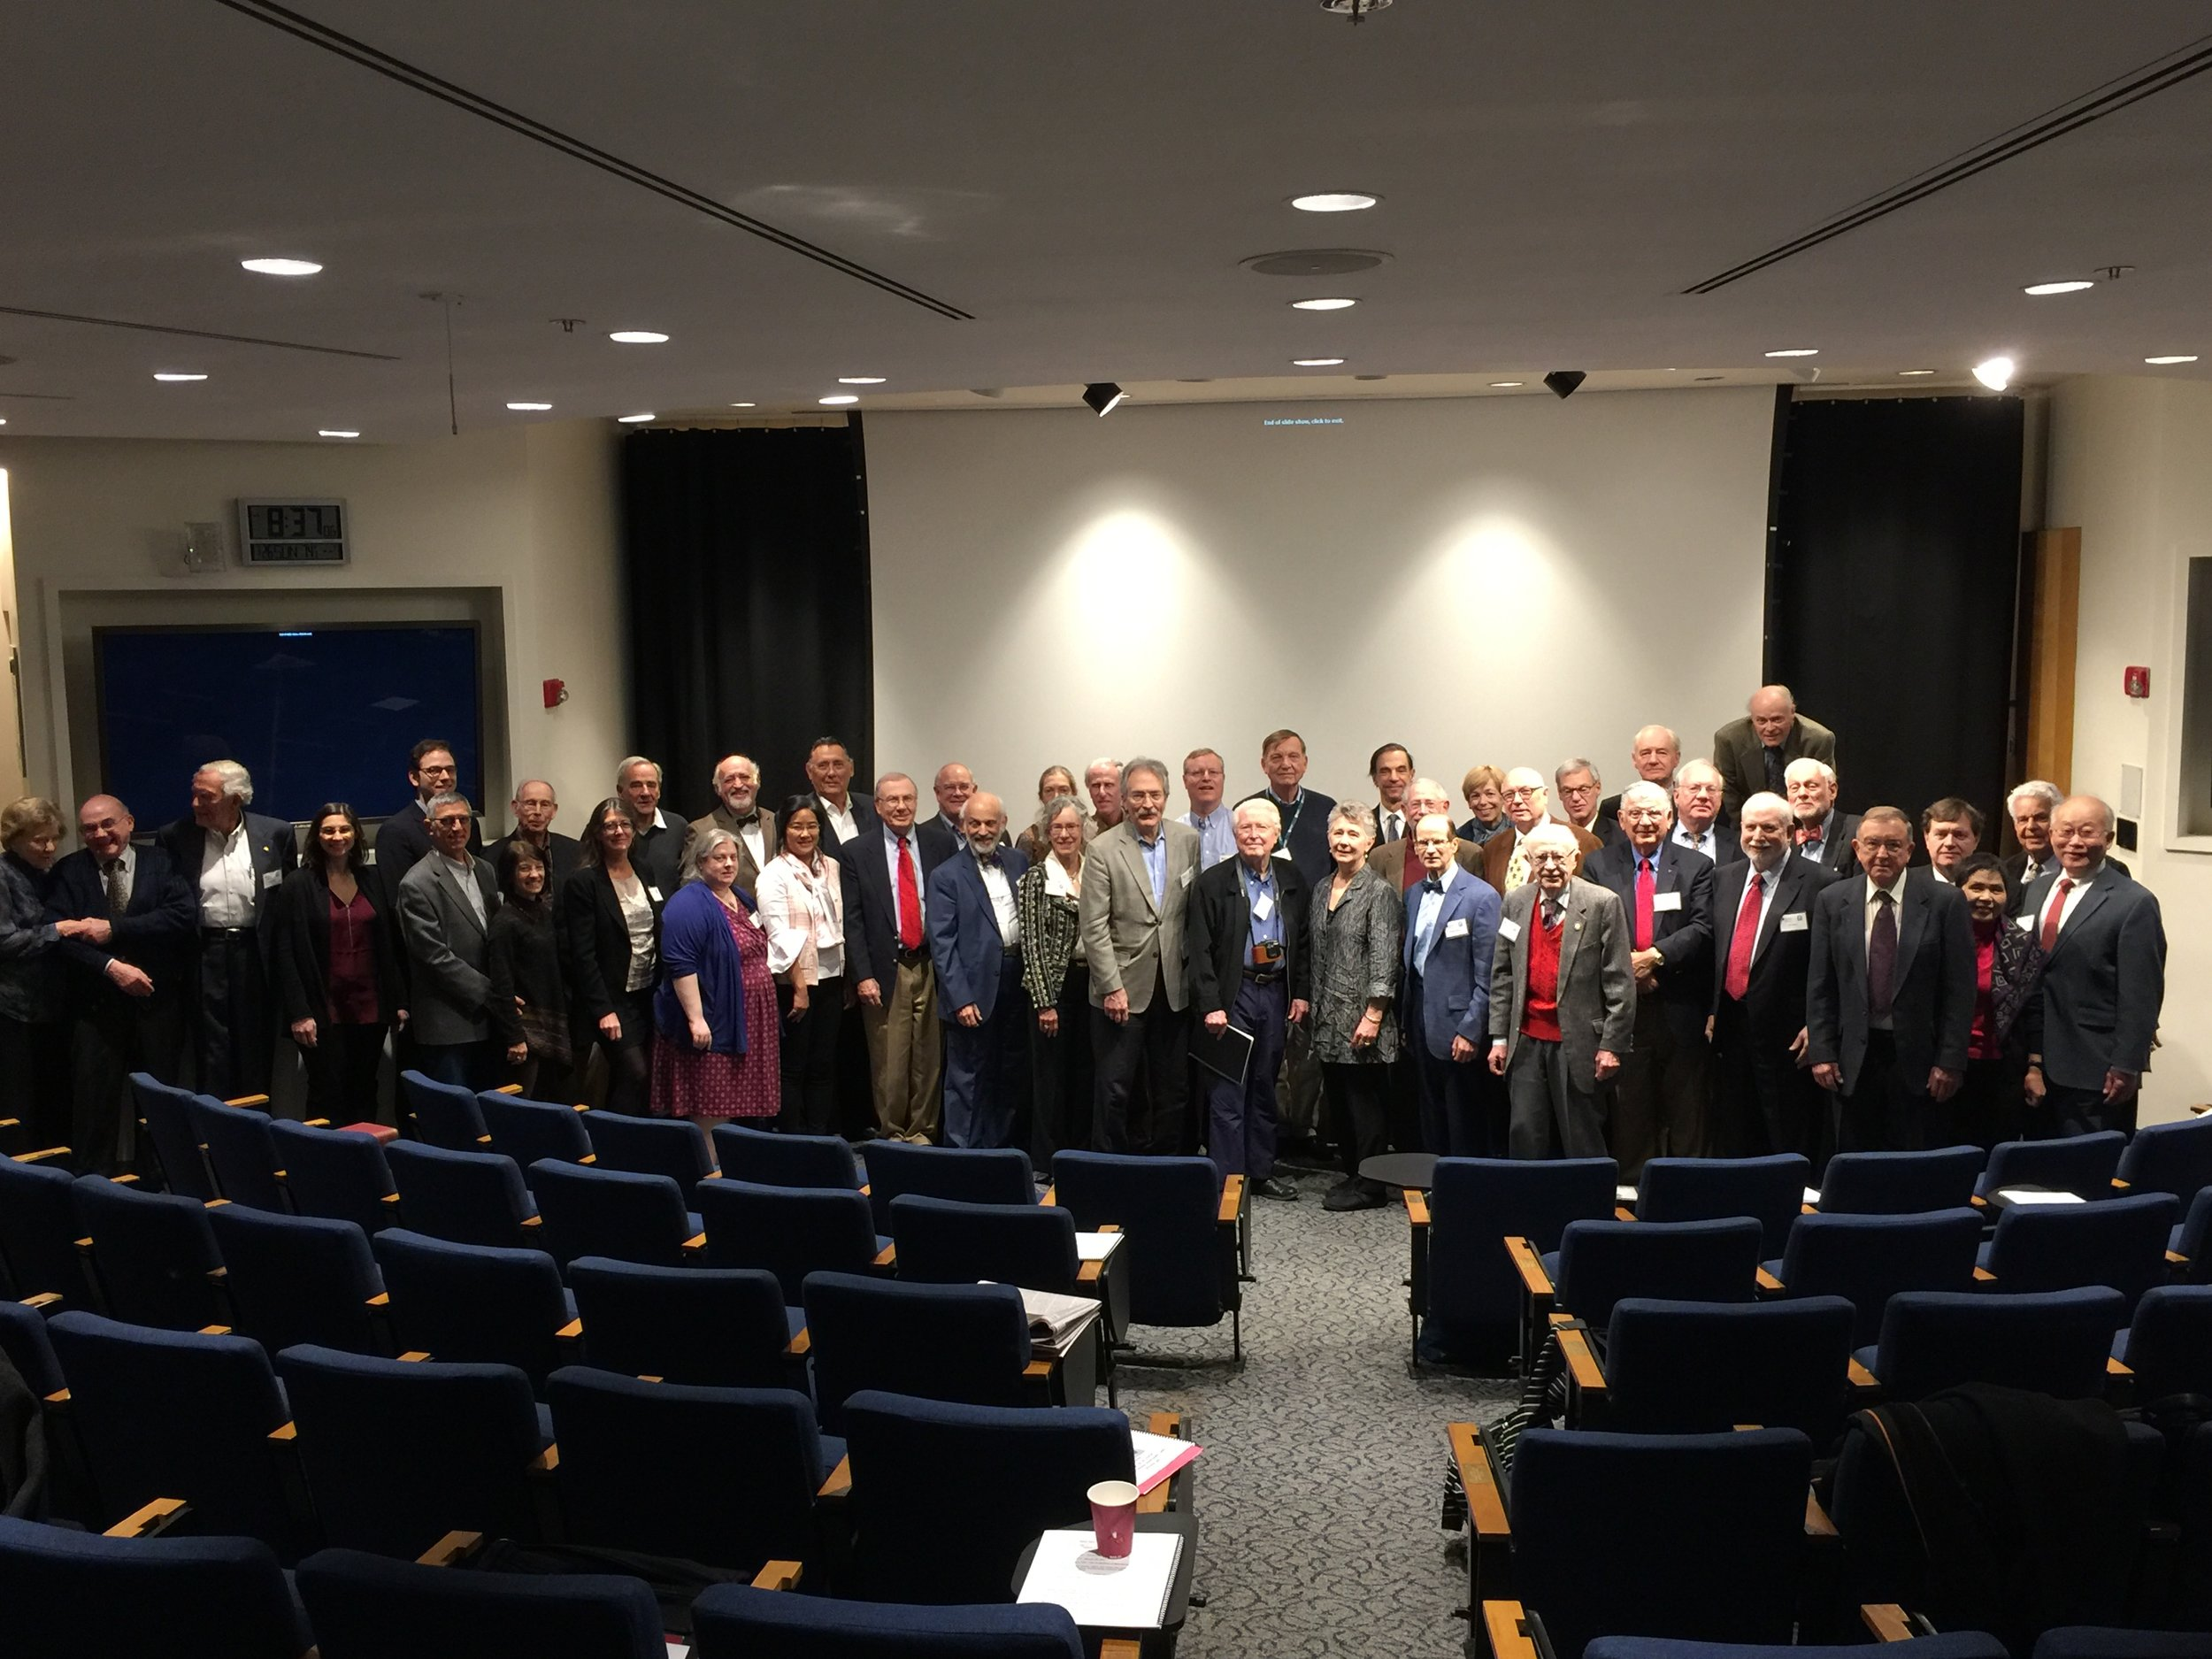 2017 Annual Meeting Attendees